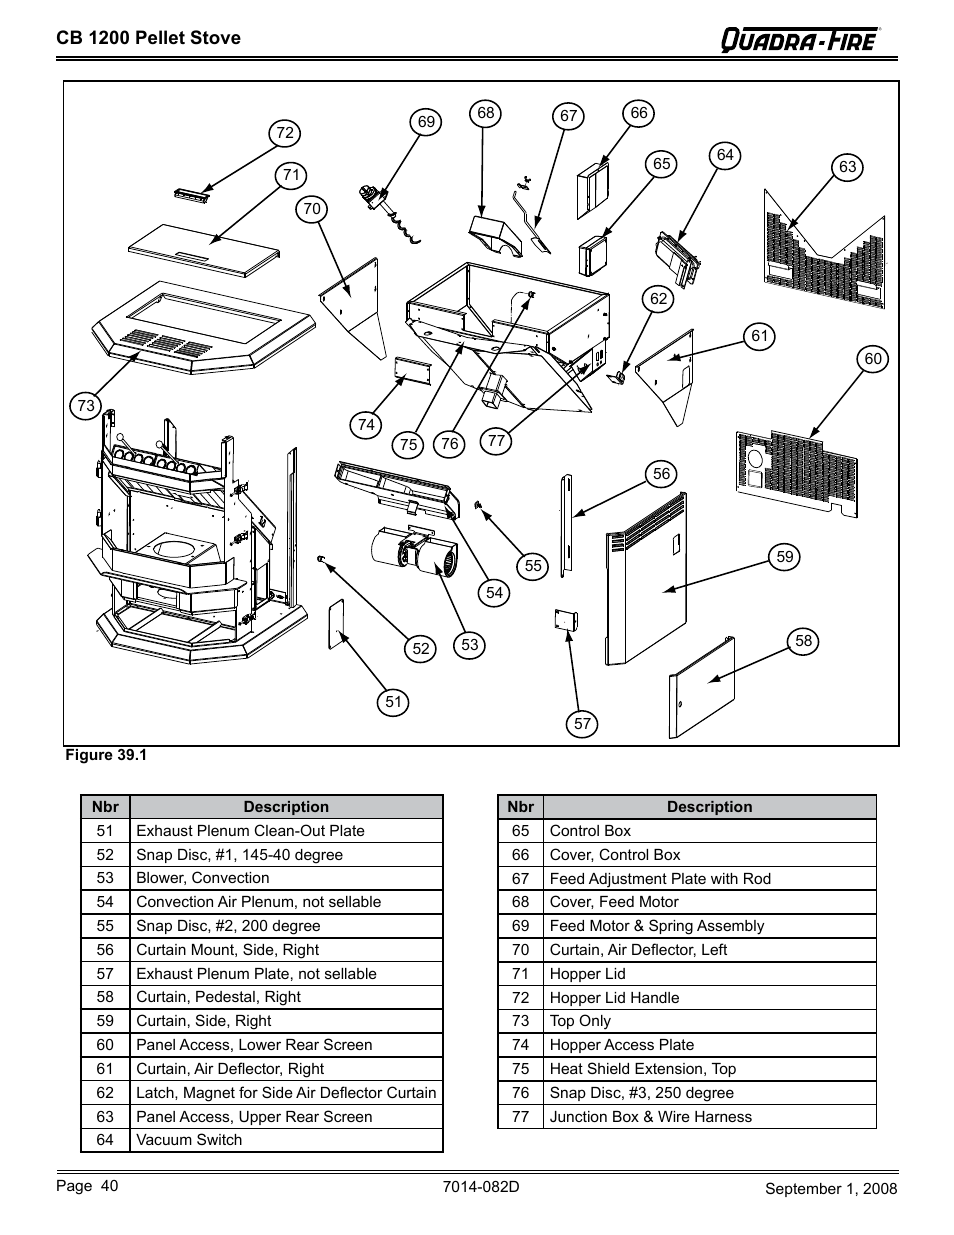 quadra-fire-cb1200-b-page40 Quadra Fire Cb Wiring Diagram on castile pellet stove manual, propane stove, wood-burning stove, sapphire gas stove, pellet stove parts, wood stoves older, mt. vernon pellet stove, pellet stove insert, classic bay pellet stove,